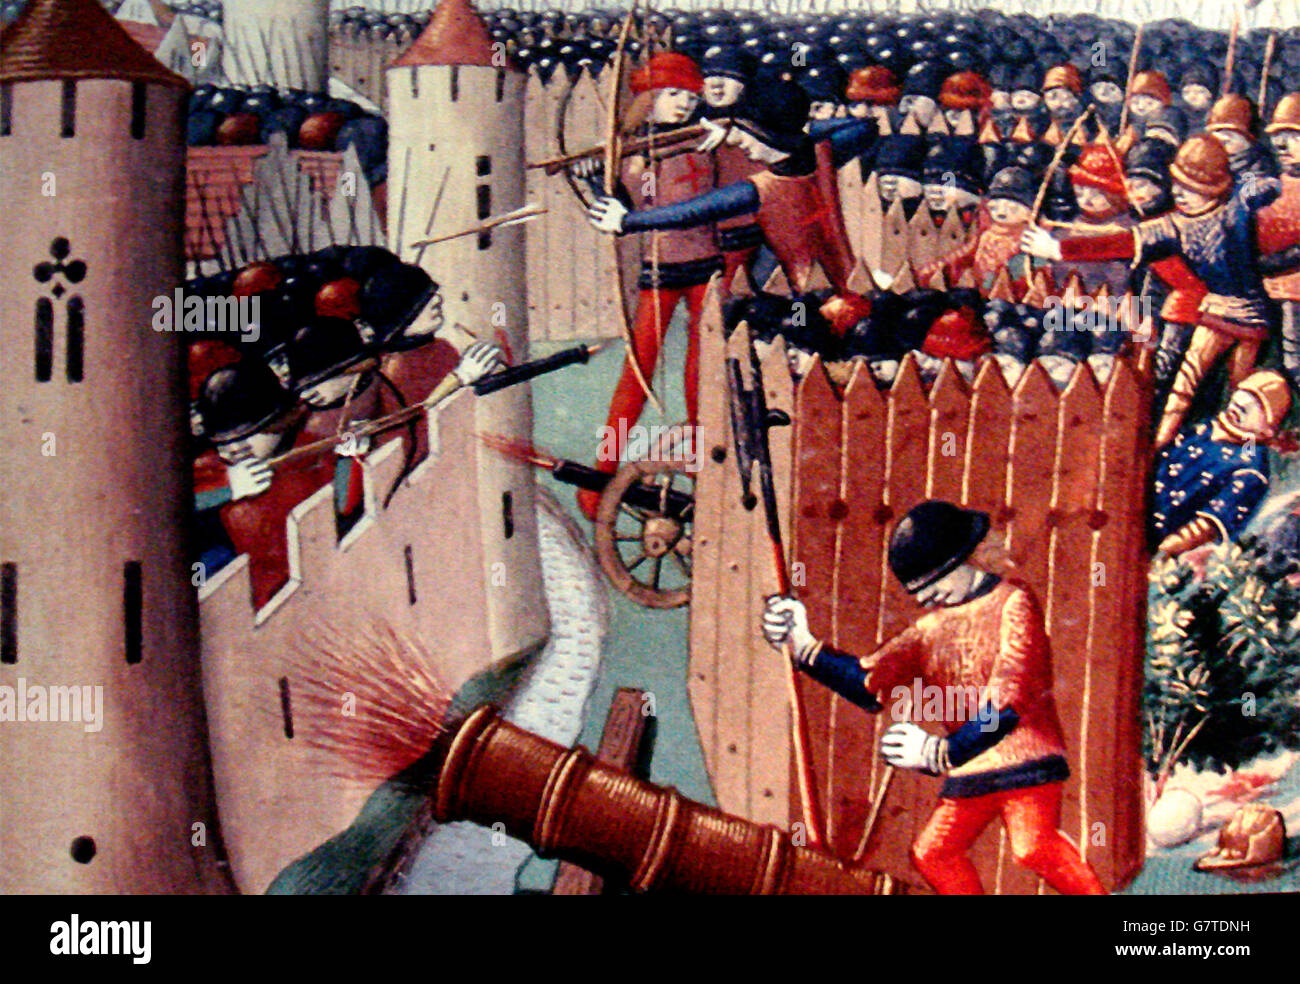 1490s depiction of the Siege of Orleans of 1429.   Martial d'Auvergne - Stock Image